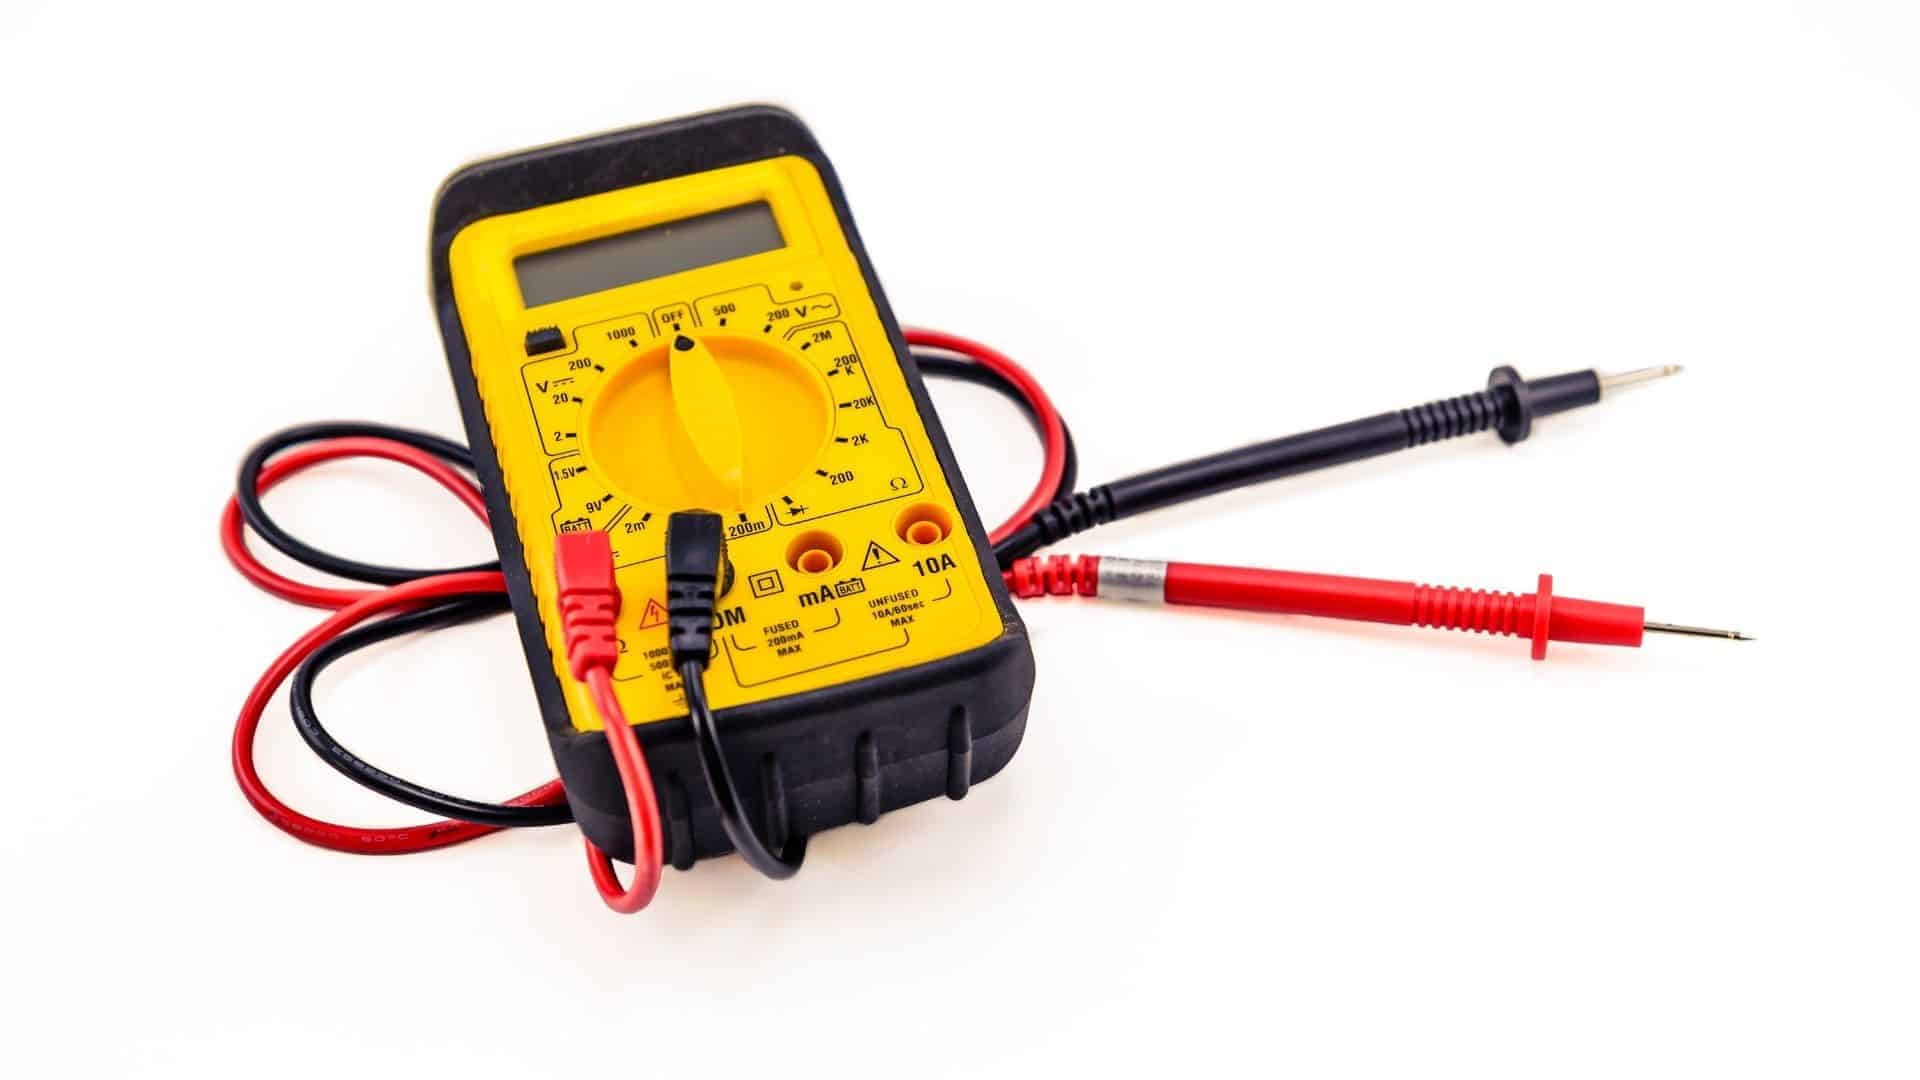 voltmeter to check phoneline